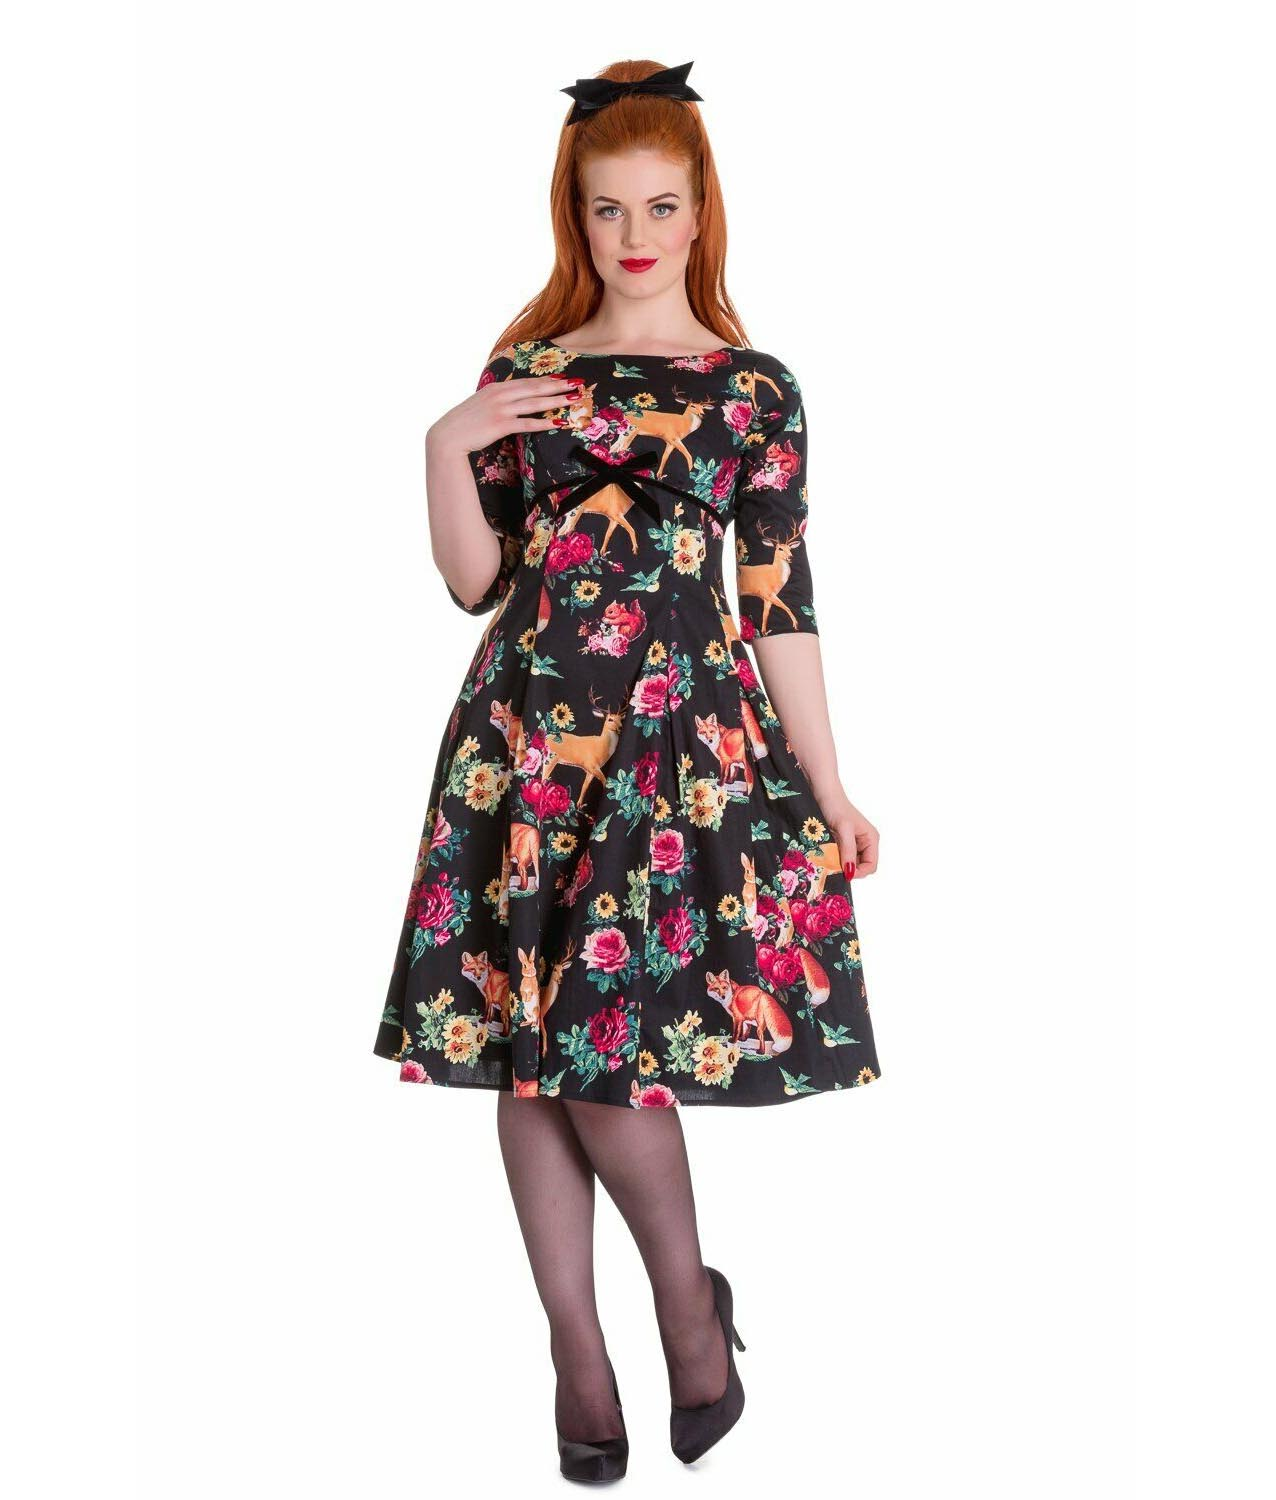 Hell-Bunny-40s-50s-Pin-Up-Vintage-Dress-HERMELINE-Woodland-Fox-All-Sizes thumbnail 3